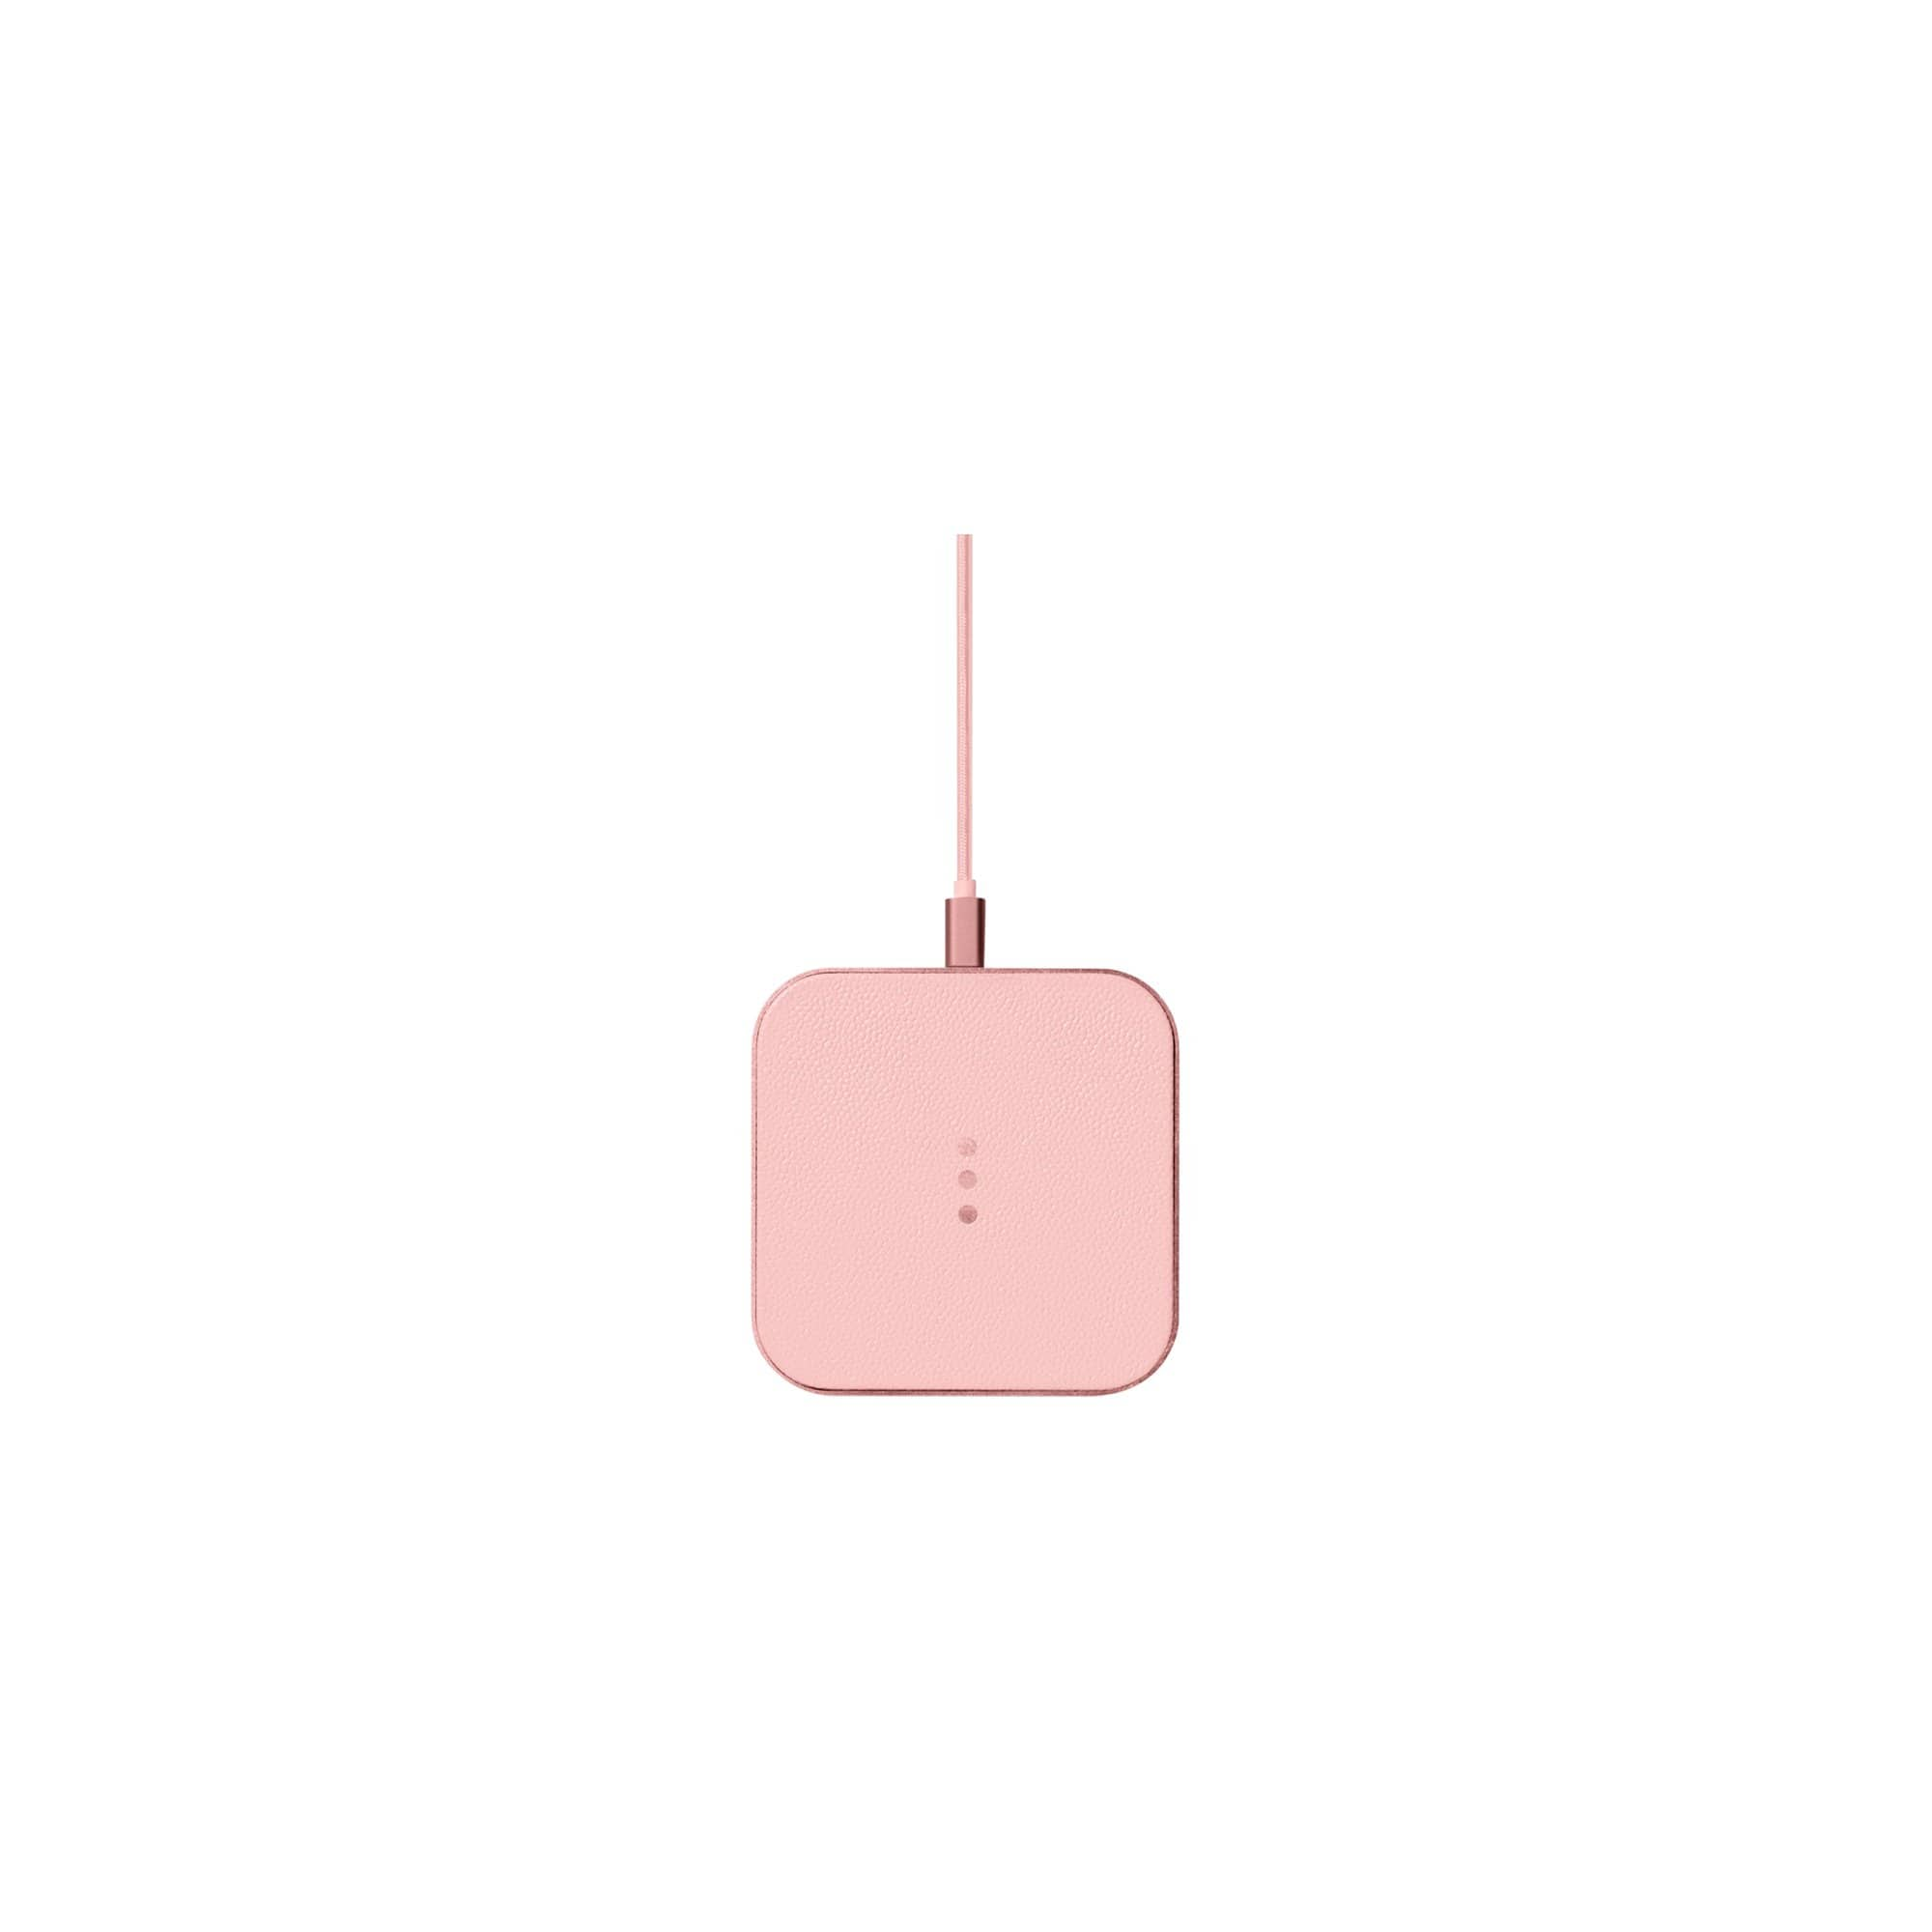 COURANT Tech Stands + Accessories CATCH:1 Wireless Charger in Dusty Rose